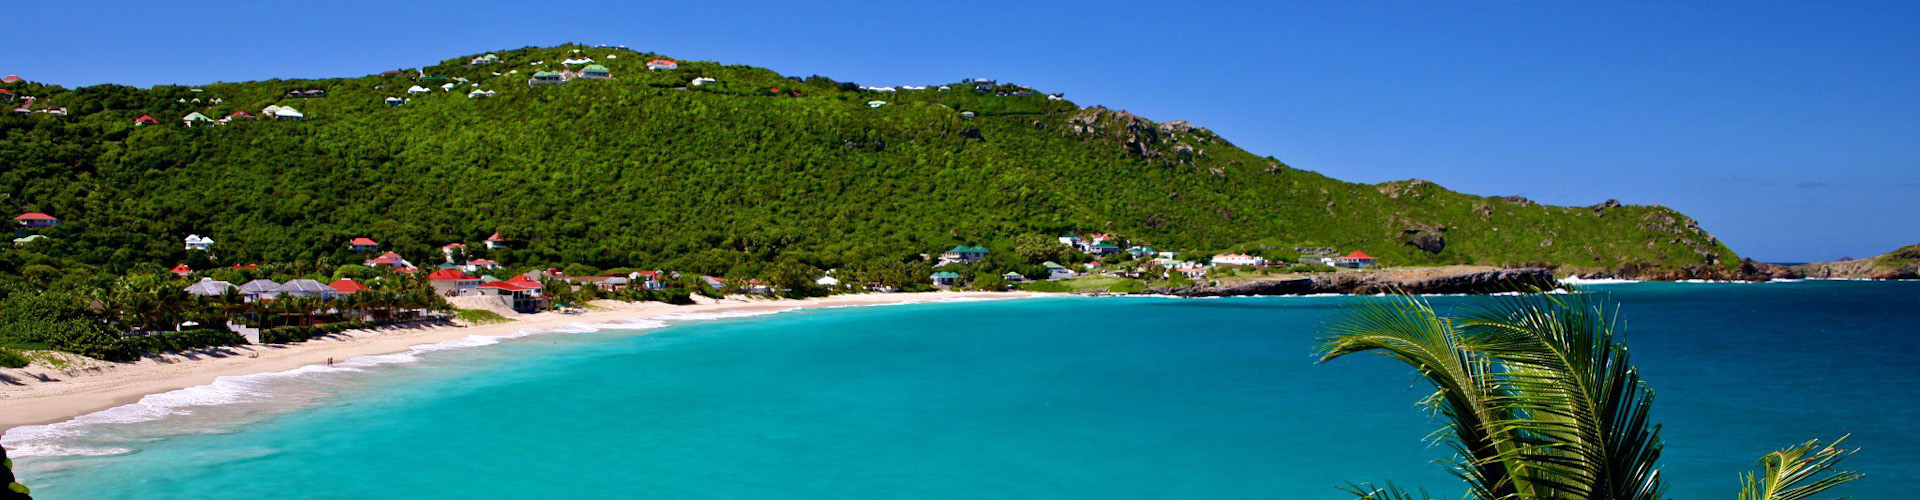 Top 5 Beaches in St Barts